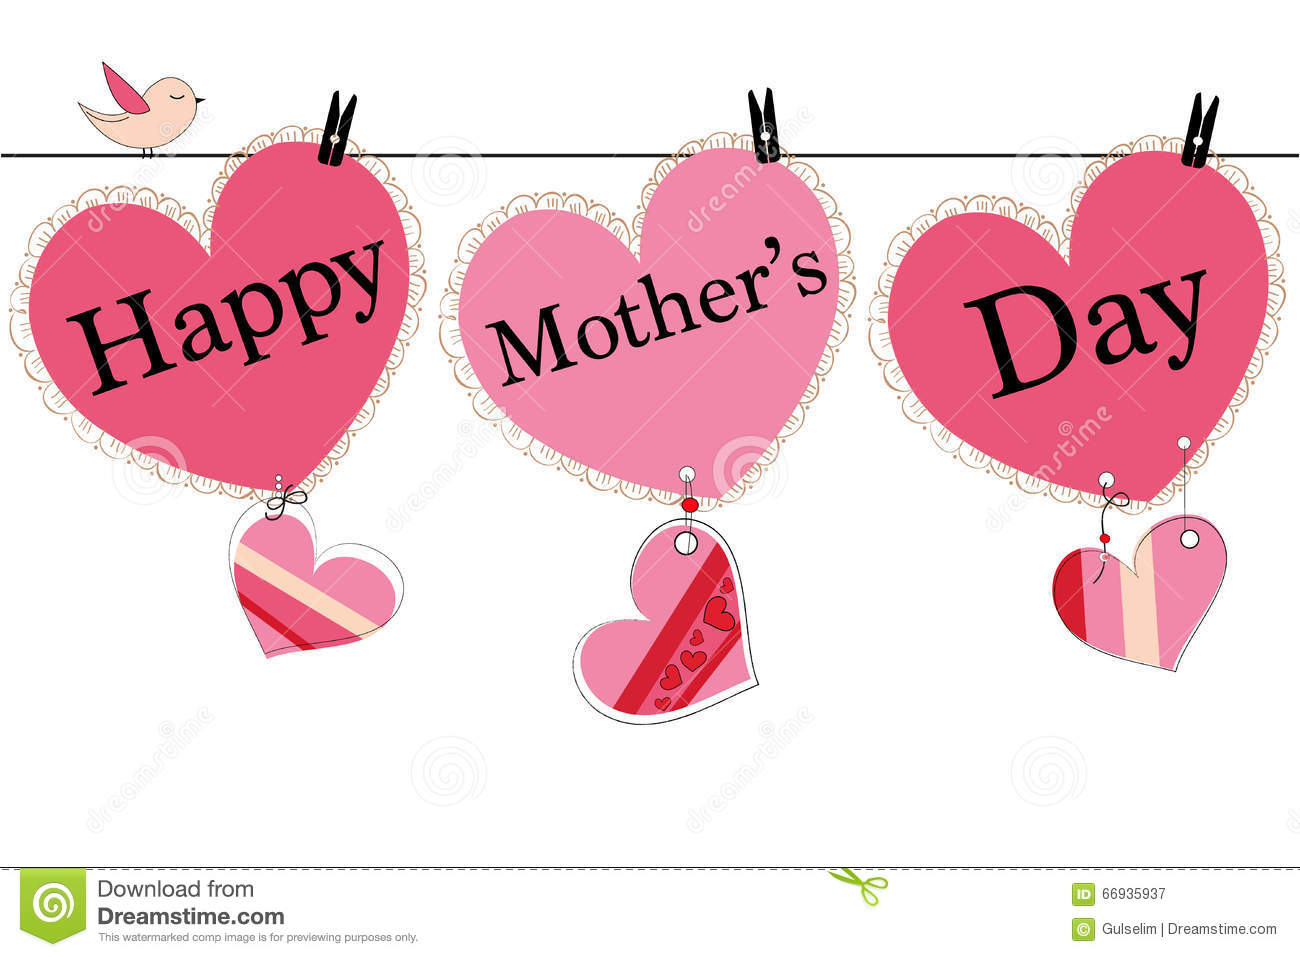 Happy mothers day greeting card with hanging heart and i love you happy mother s day greeting card with hanging heart and i love you text vector background concept pattern kristyandbryce Image collections